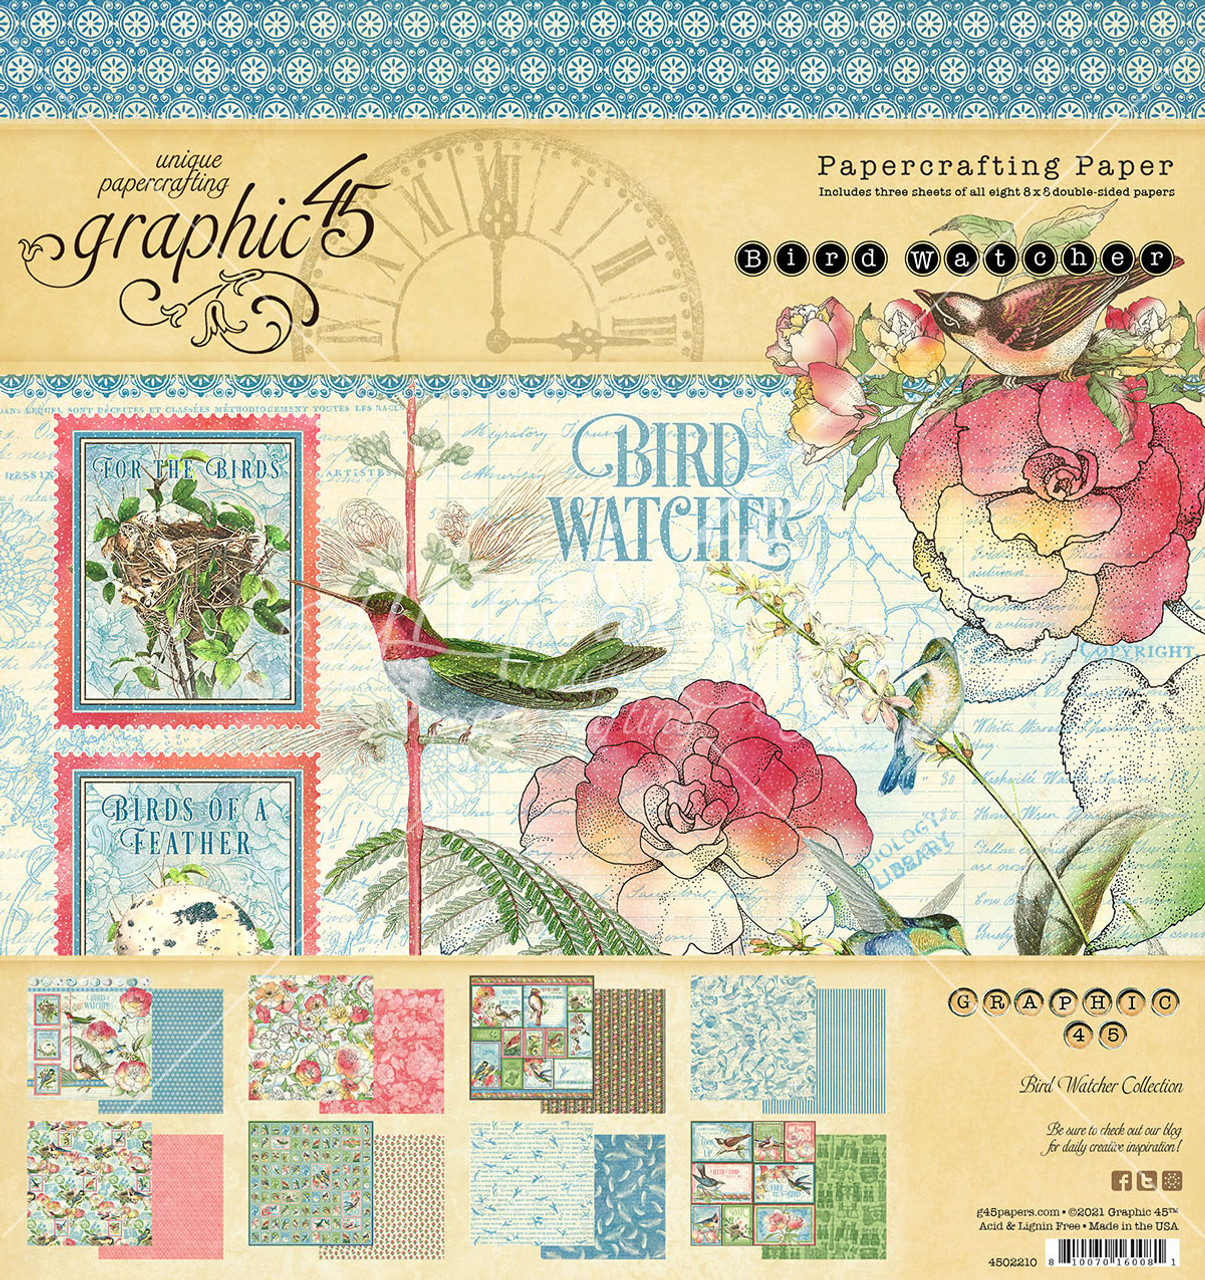 Graphic 45 Couture 10 sheets of double sided design papers